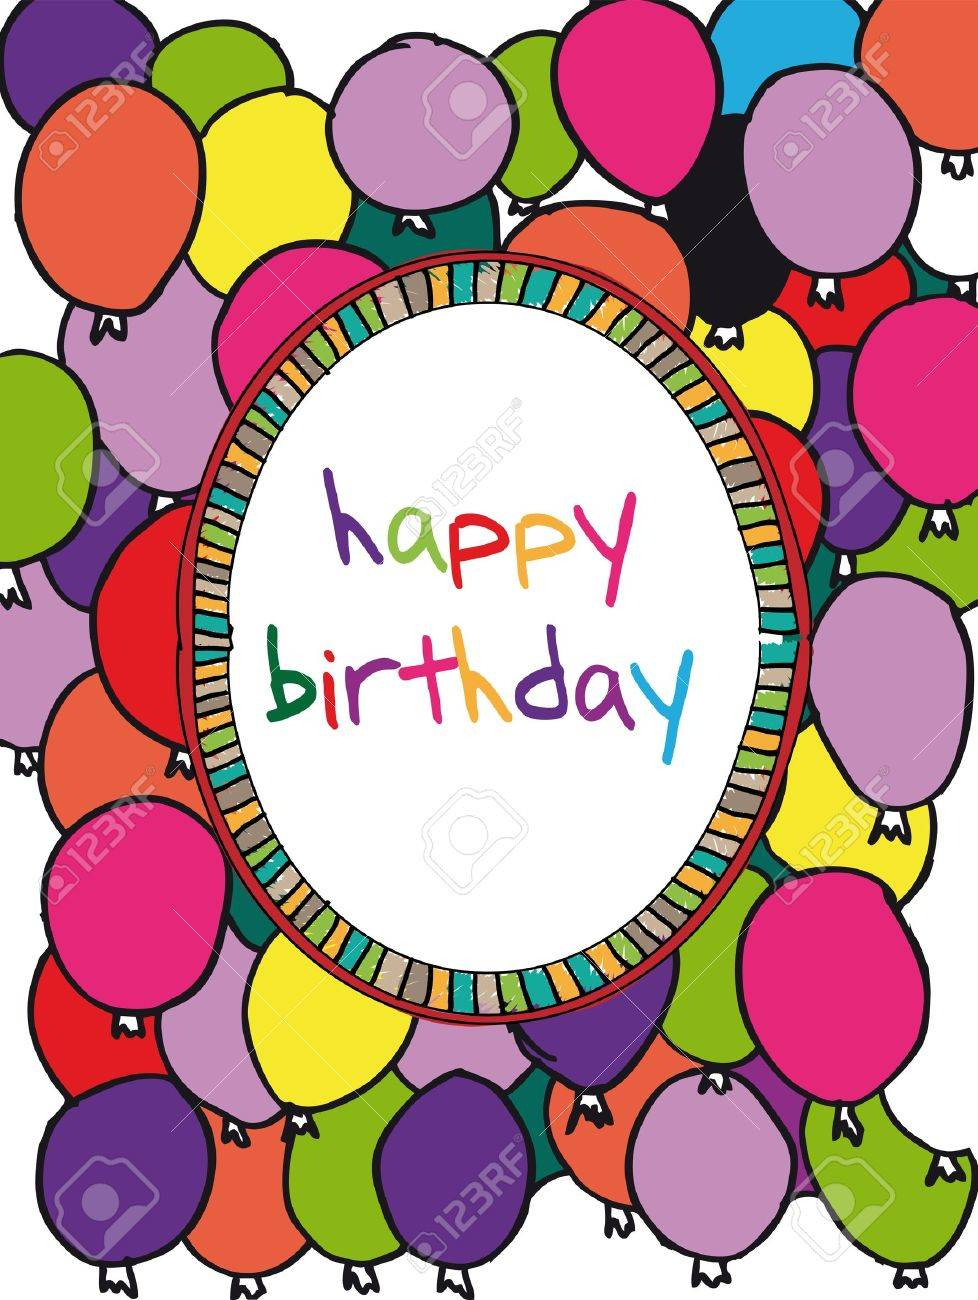 colorful birthday borders ; 11487070-birthday-card-with-colored-balloons-border-vector-illustration